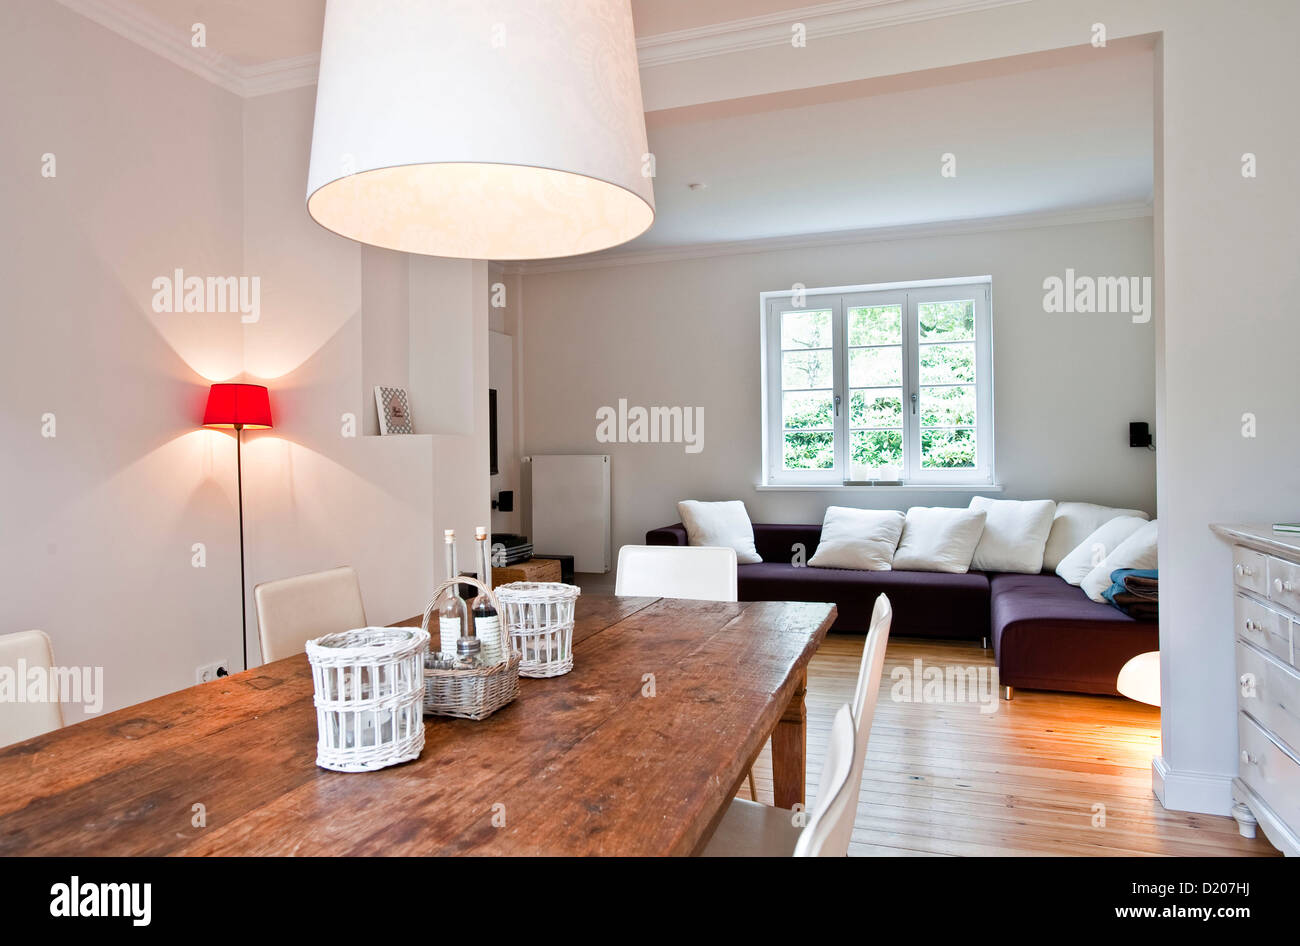 View from dining table towards the lounge, House furnished in country style, Hamburg, Germany - Stock Image